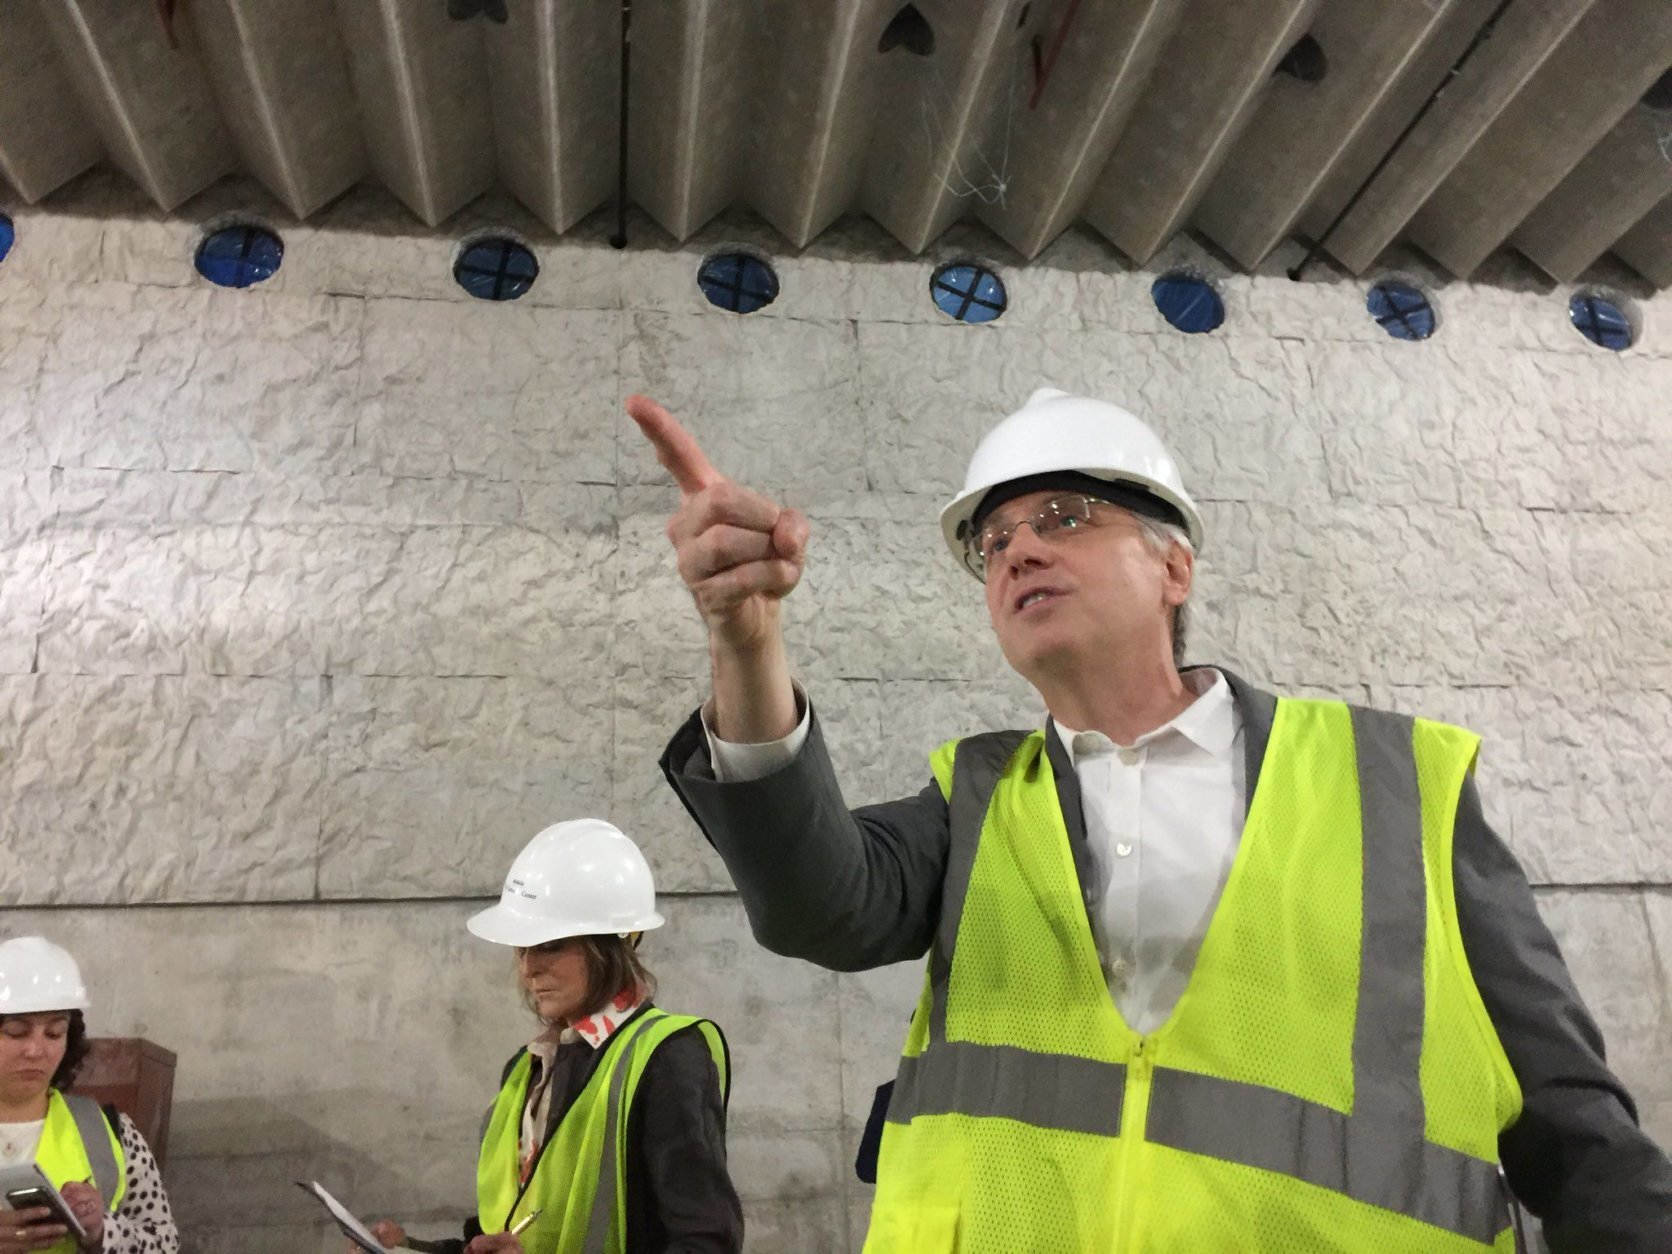 The REACH expansion will be warmed/cooled by water flowing through tubes in the concrete, said architect Chris McVoy. Also note that the ceiling has acoustic 'ribs.' (WTOP/Kristi King)